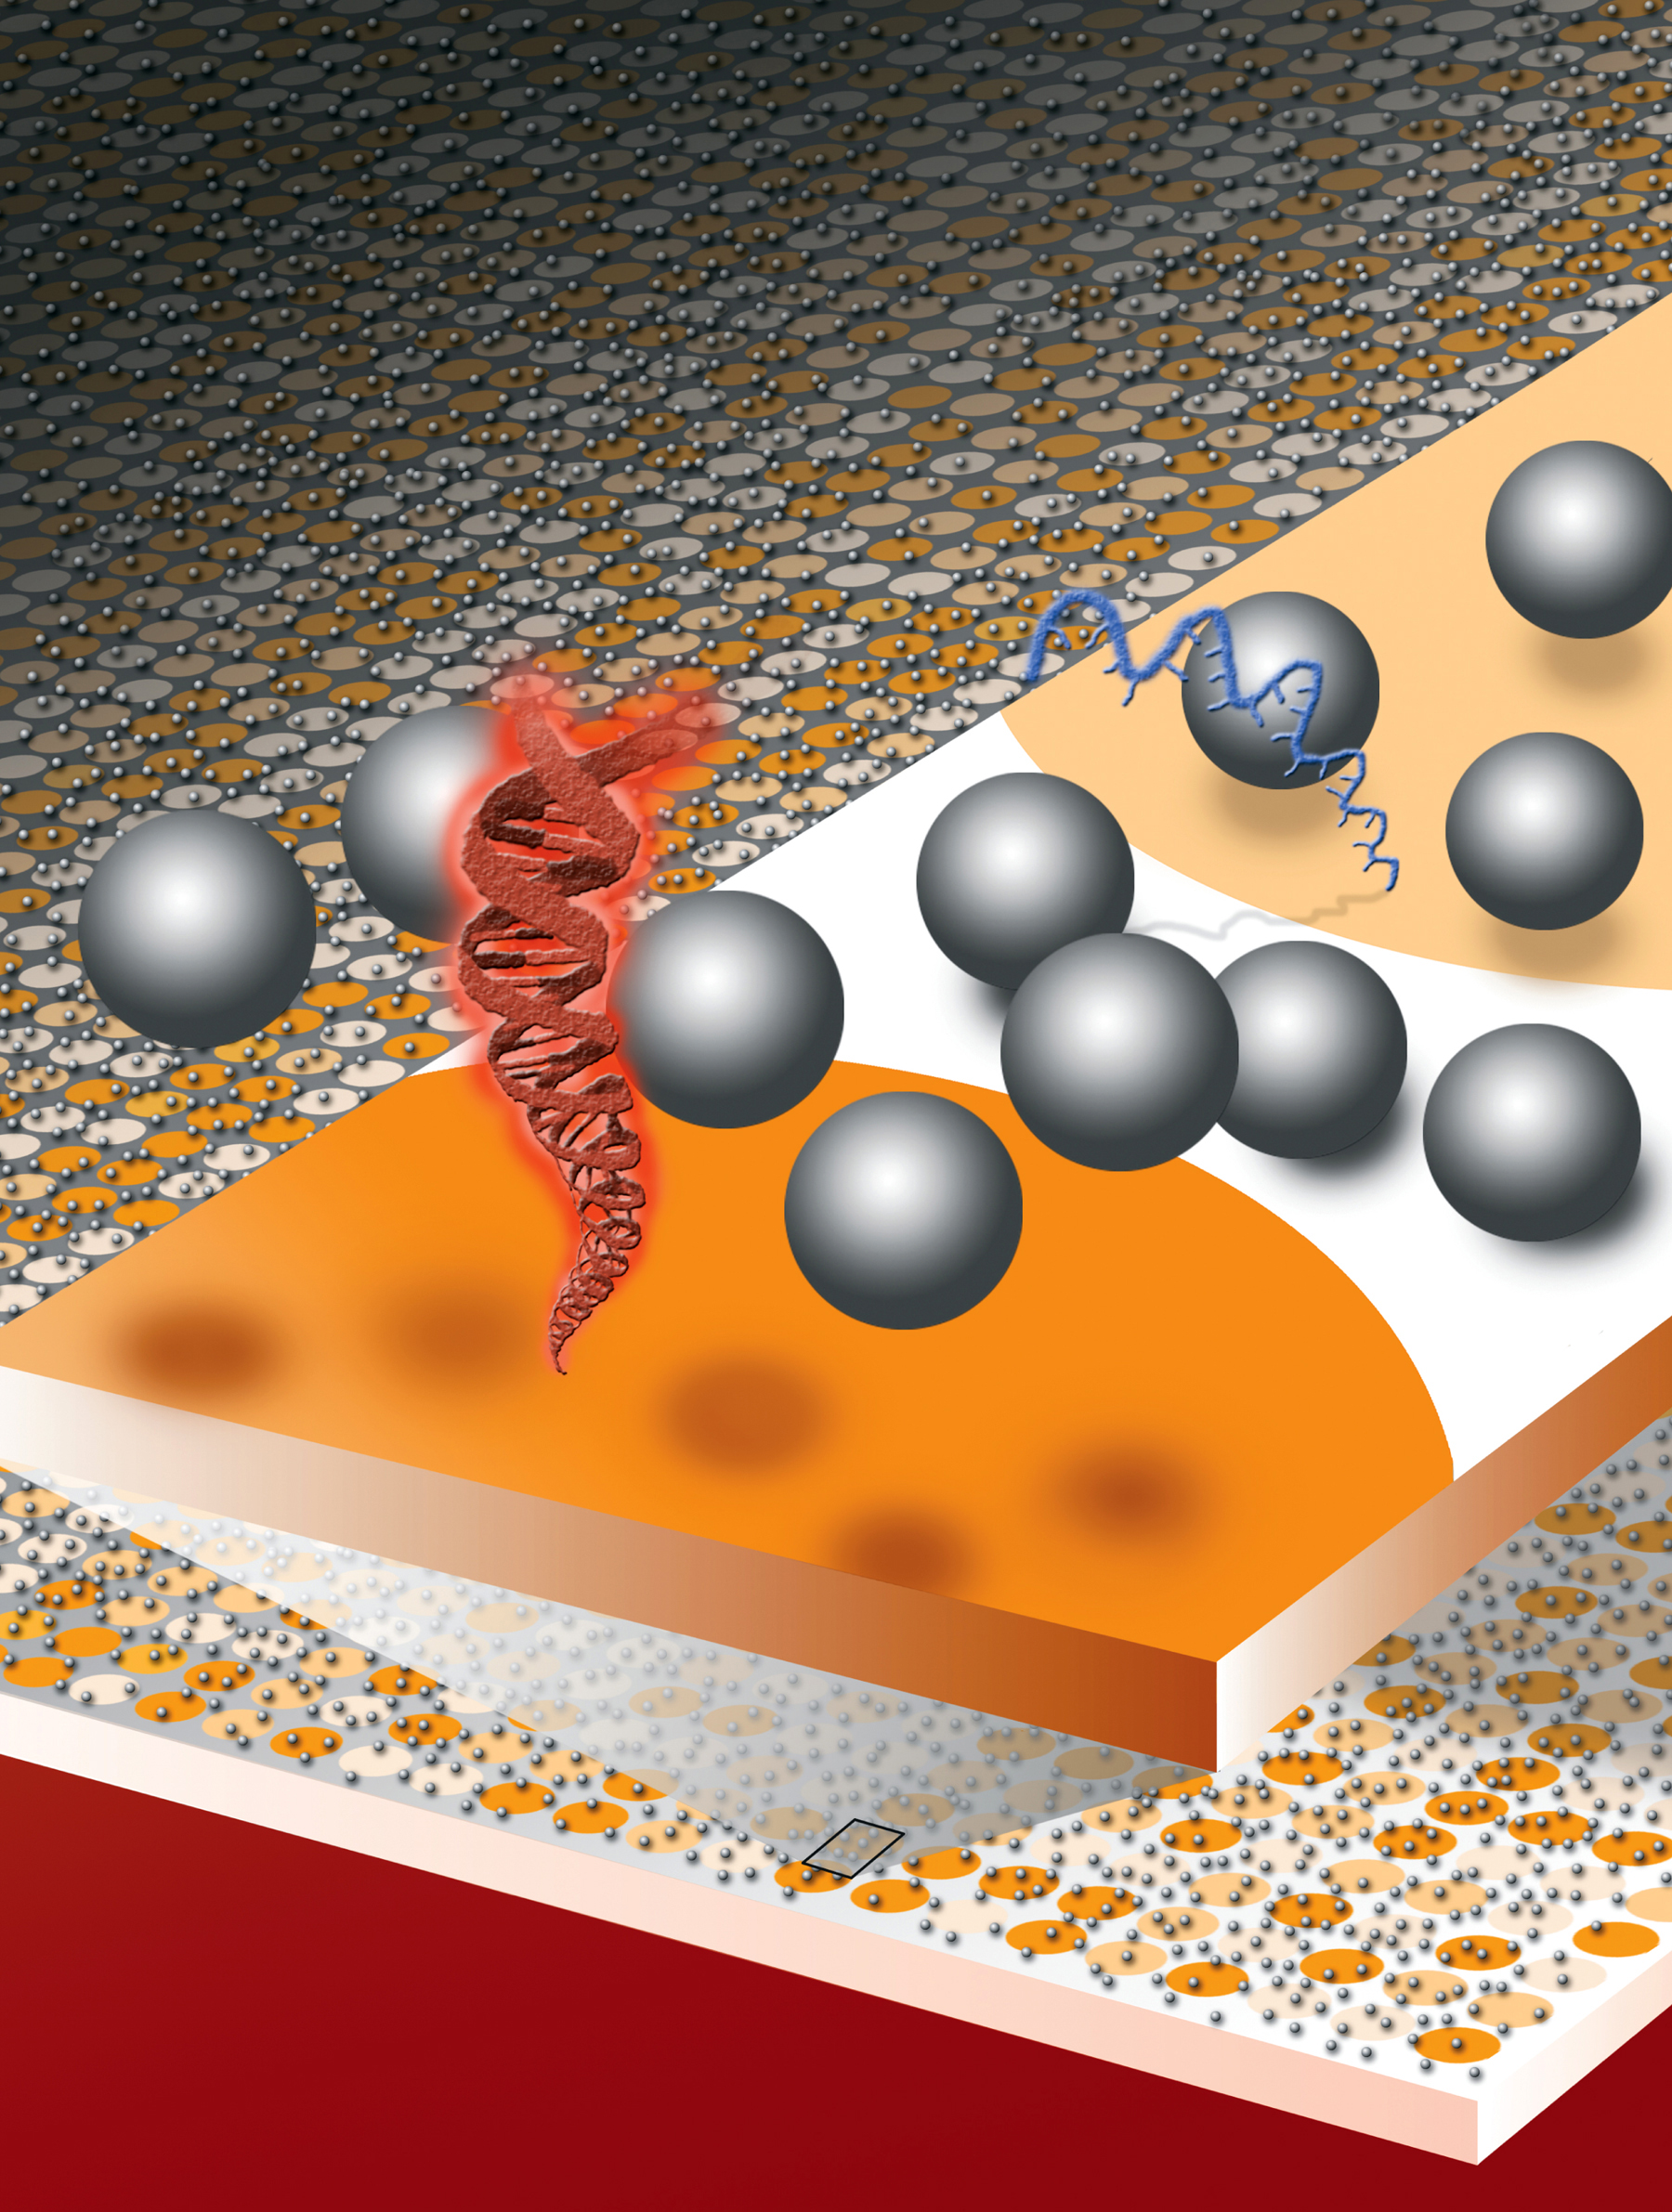 Microspheres levitate from electrostatic repulsion